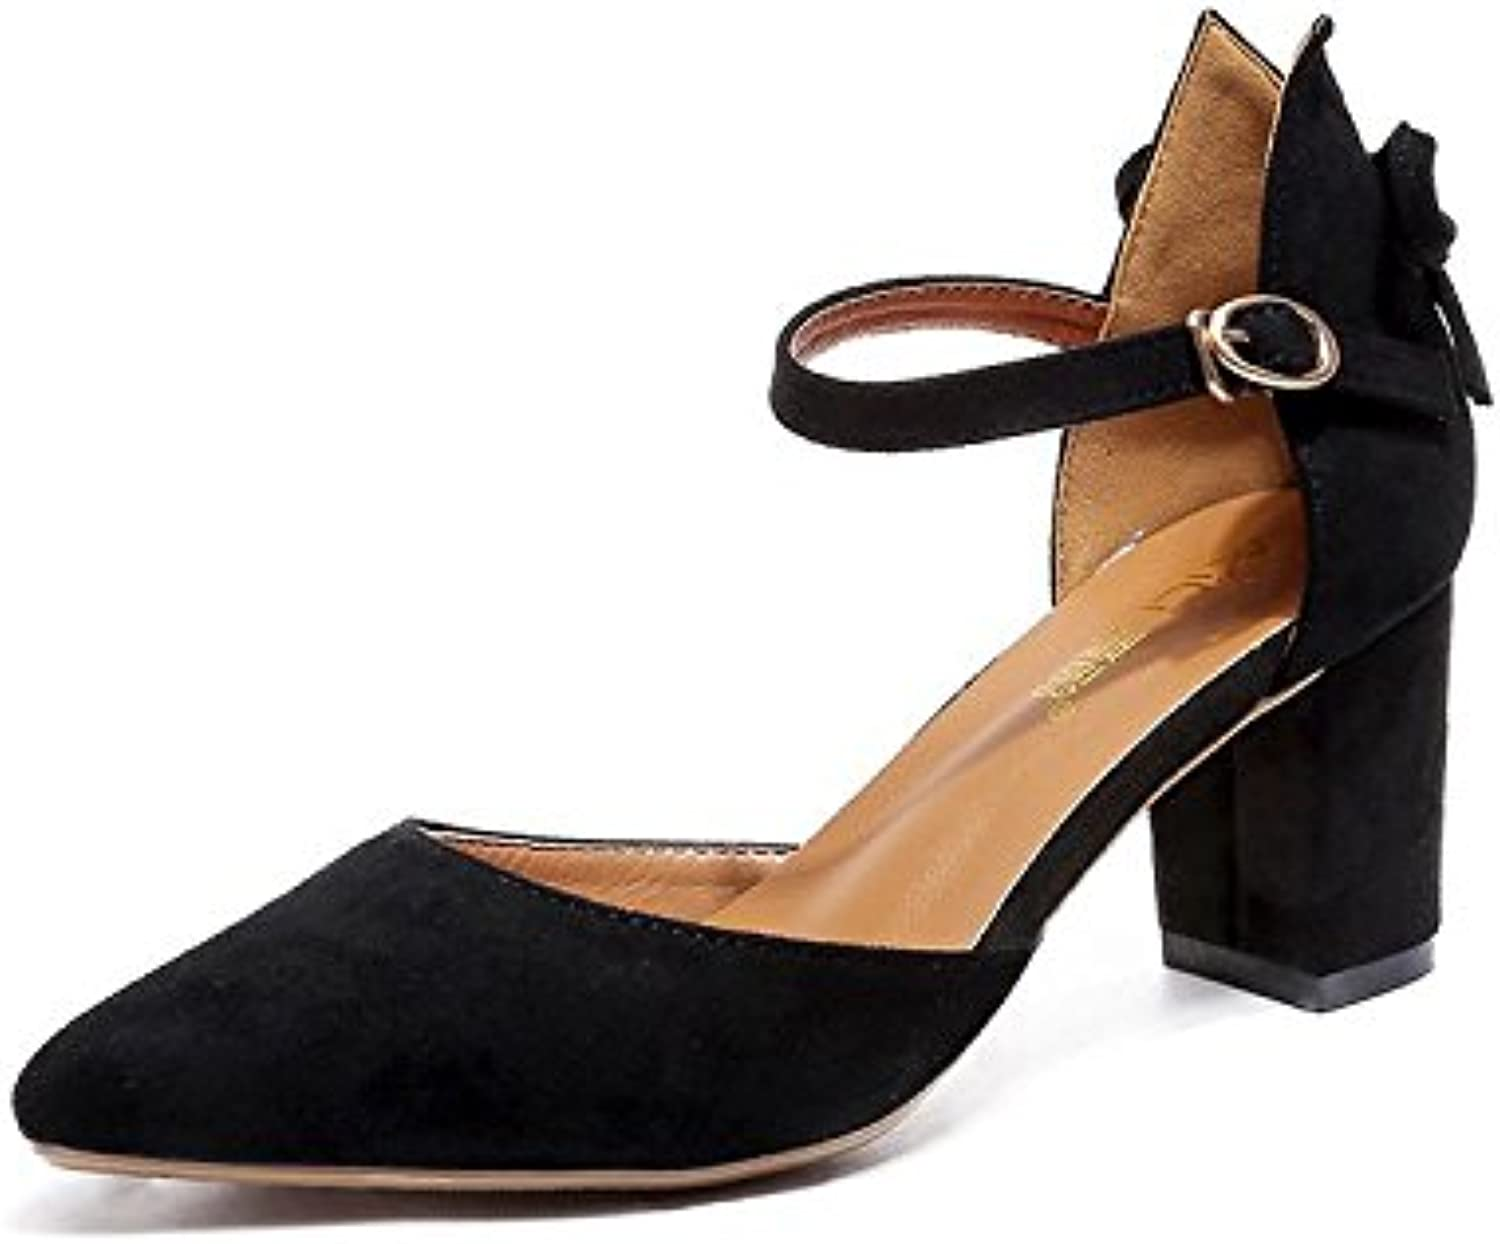 LHJY The New Women's shoes are All Round Buckled Pointed Female Thick and Shallow Buckled High Heels